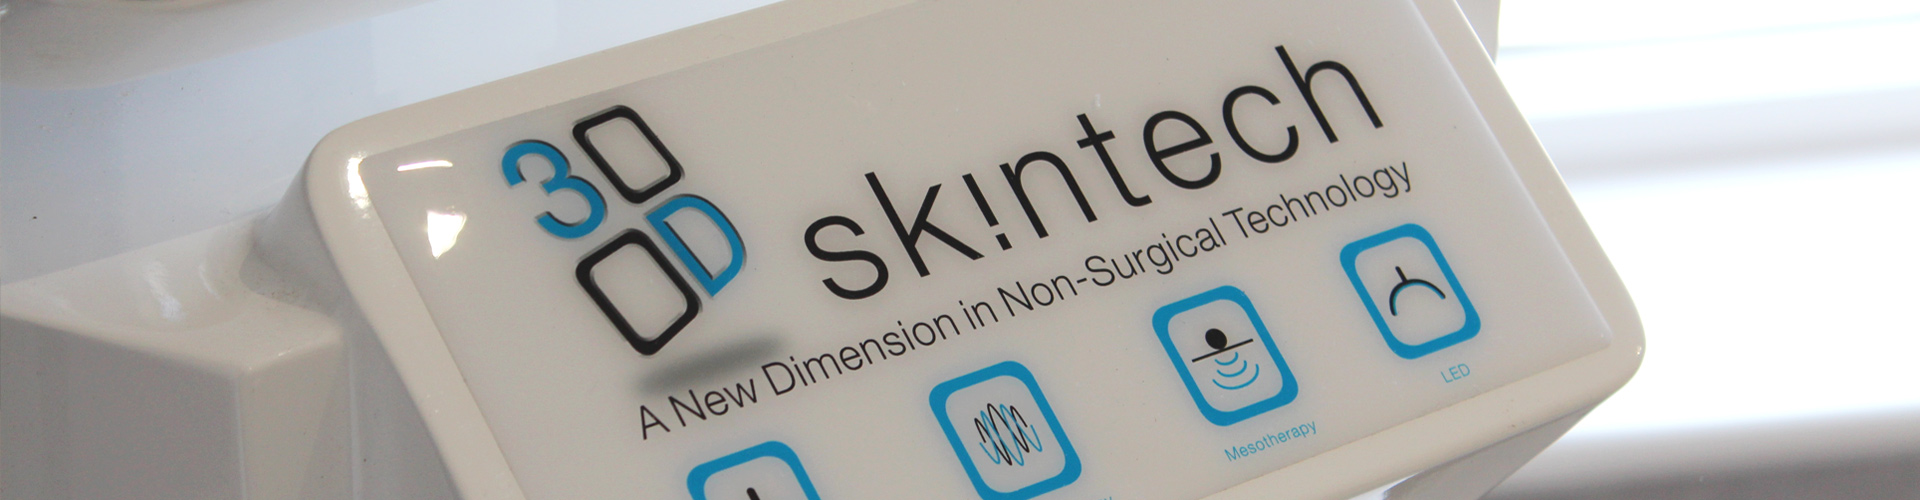 3D Skintech Facial treatment | Flawless Body